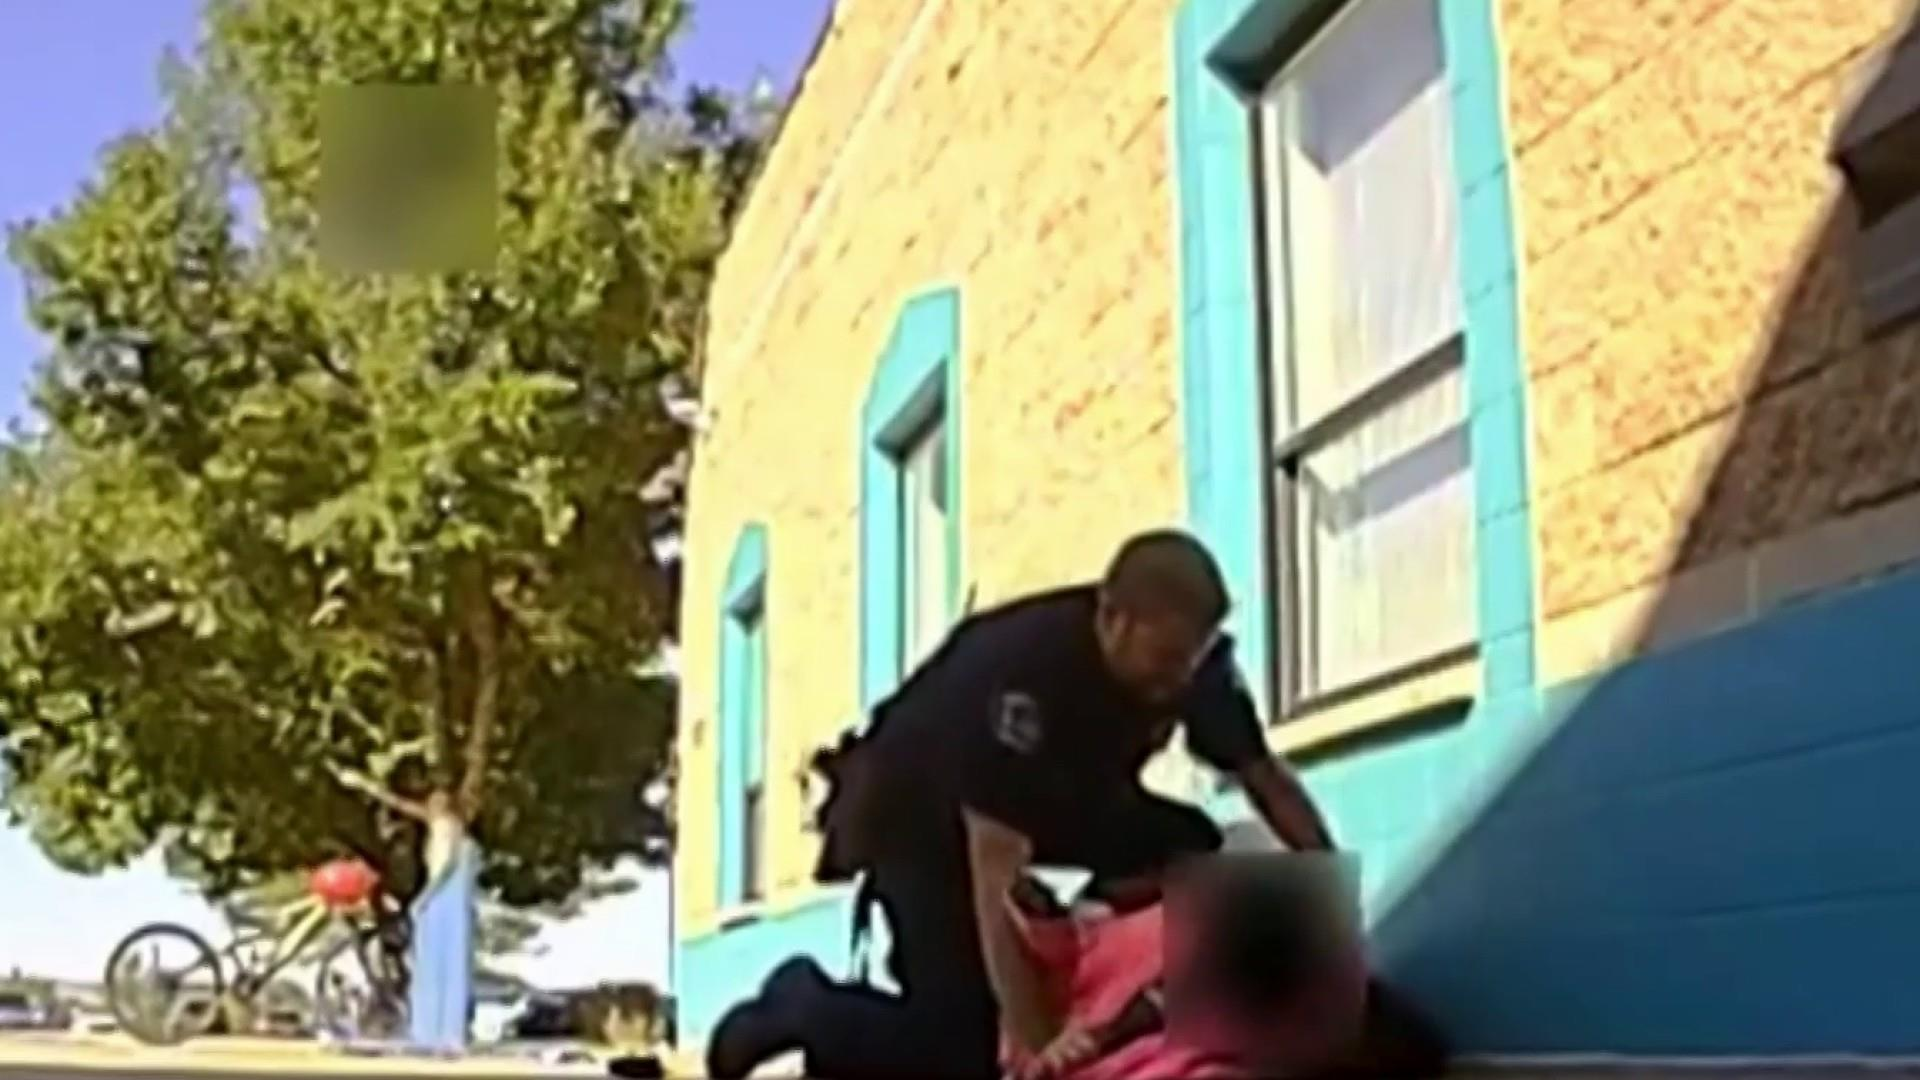 Officer resigns after video captures him throwing an 11-year-old special needs student to the ground